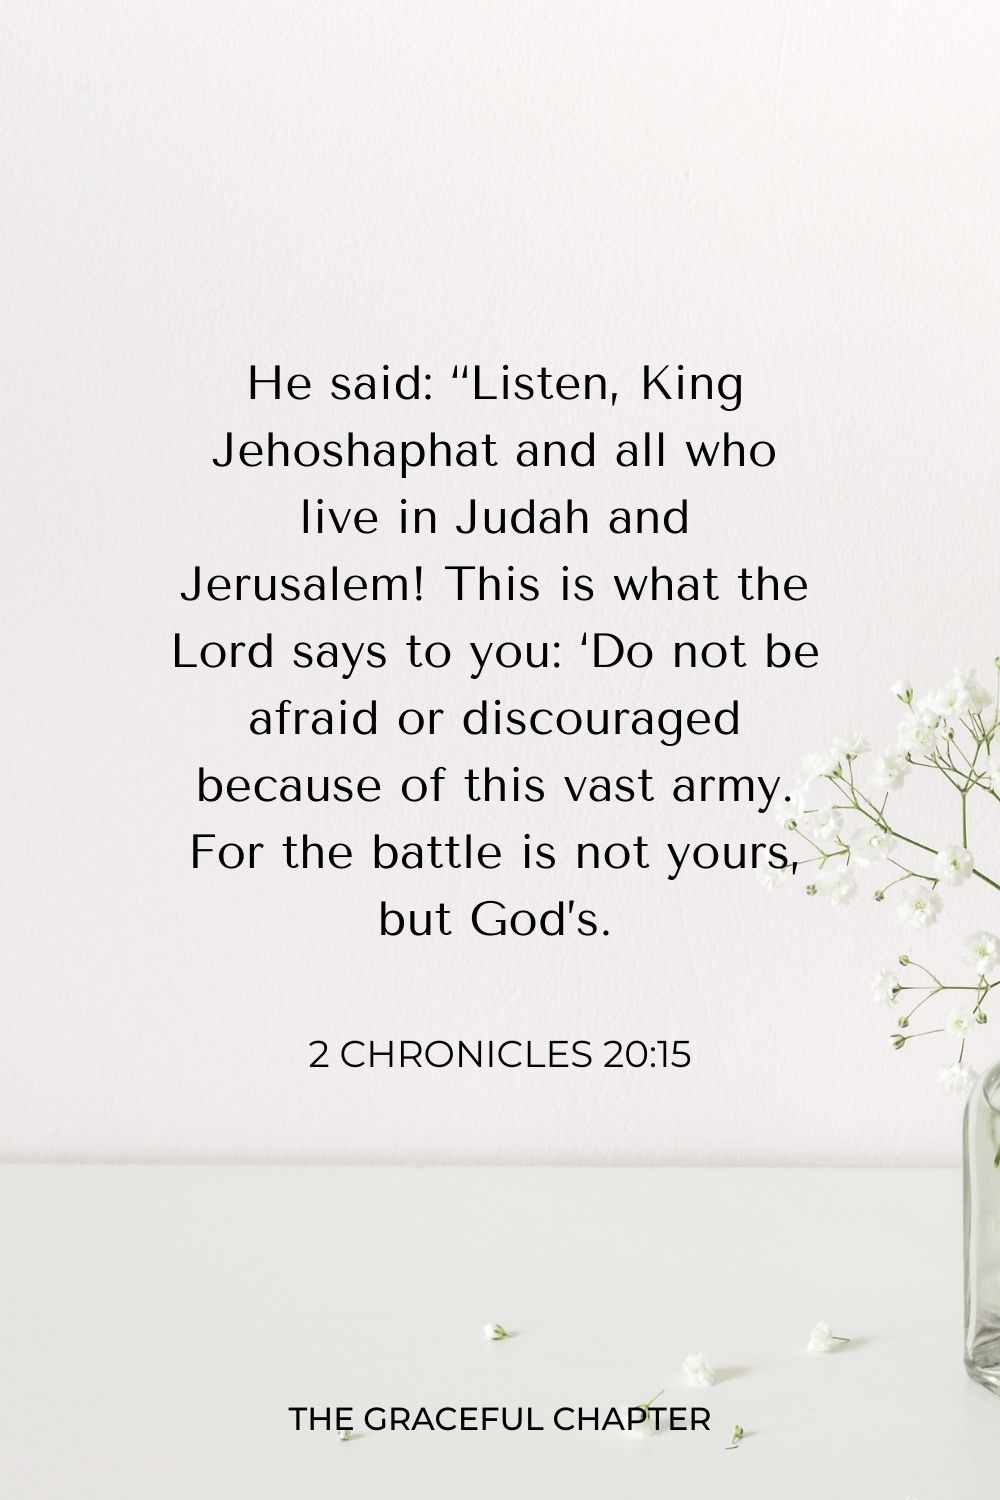 "He said: ""Listen, King Jehoshaphat and all who live in Judah and Jerusalem! This is what the Lord says to you: 'Do not be afraid or discouraged because of this vast army. For the battle is not yours, but God's. 2 Chronicles 20:15"